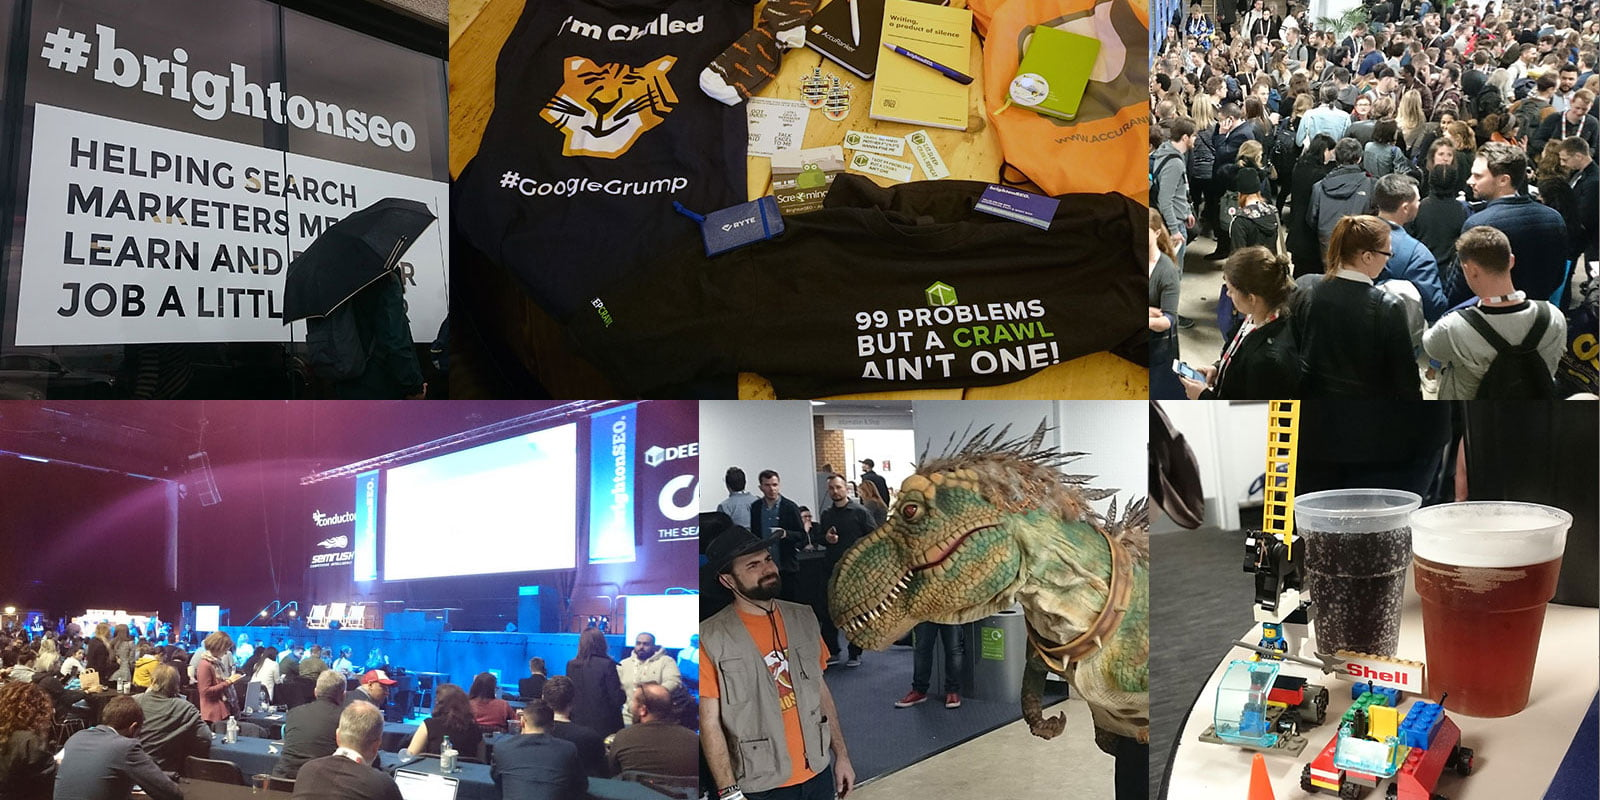 SEO, lego, free beer and dinosaurs!